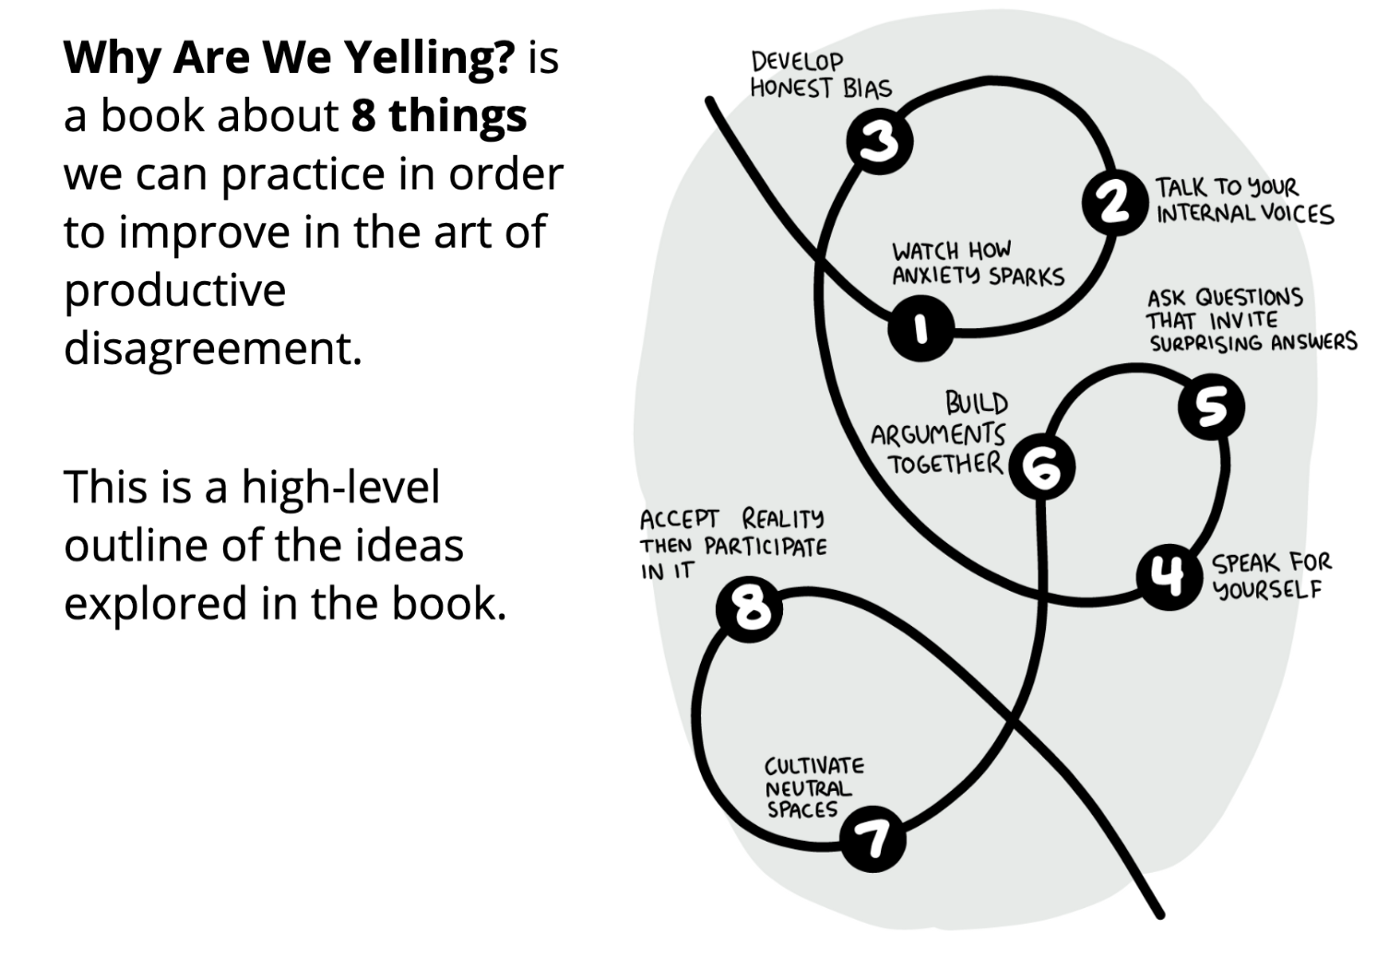 Why Are We Yelling? is a book about 8 things we can practice in order to improve the art of productive disagreement.